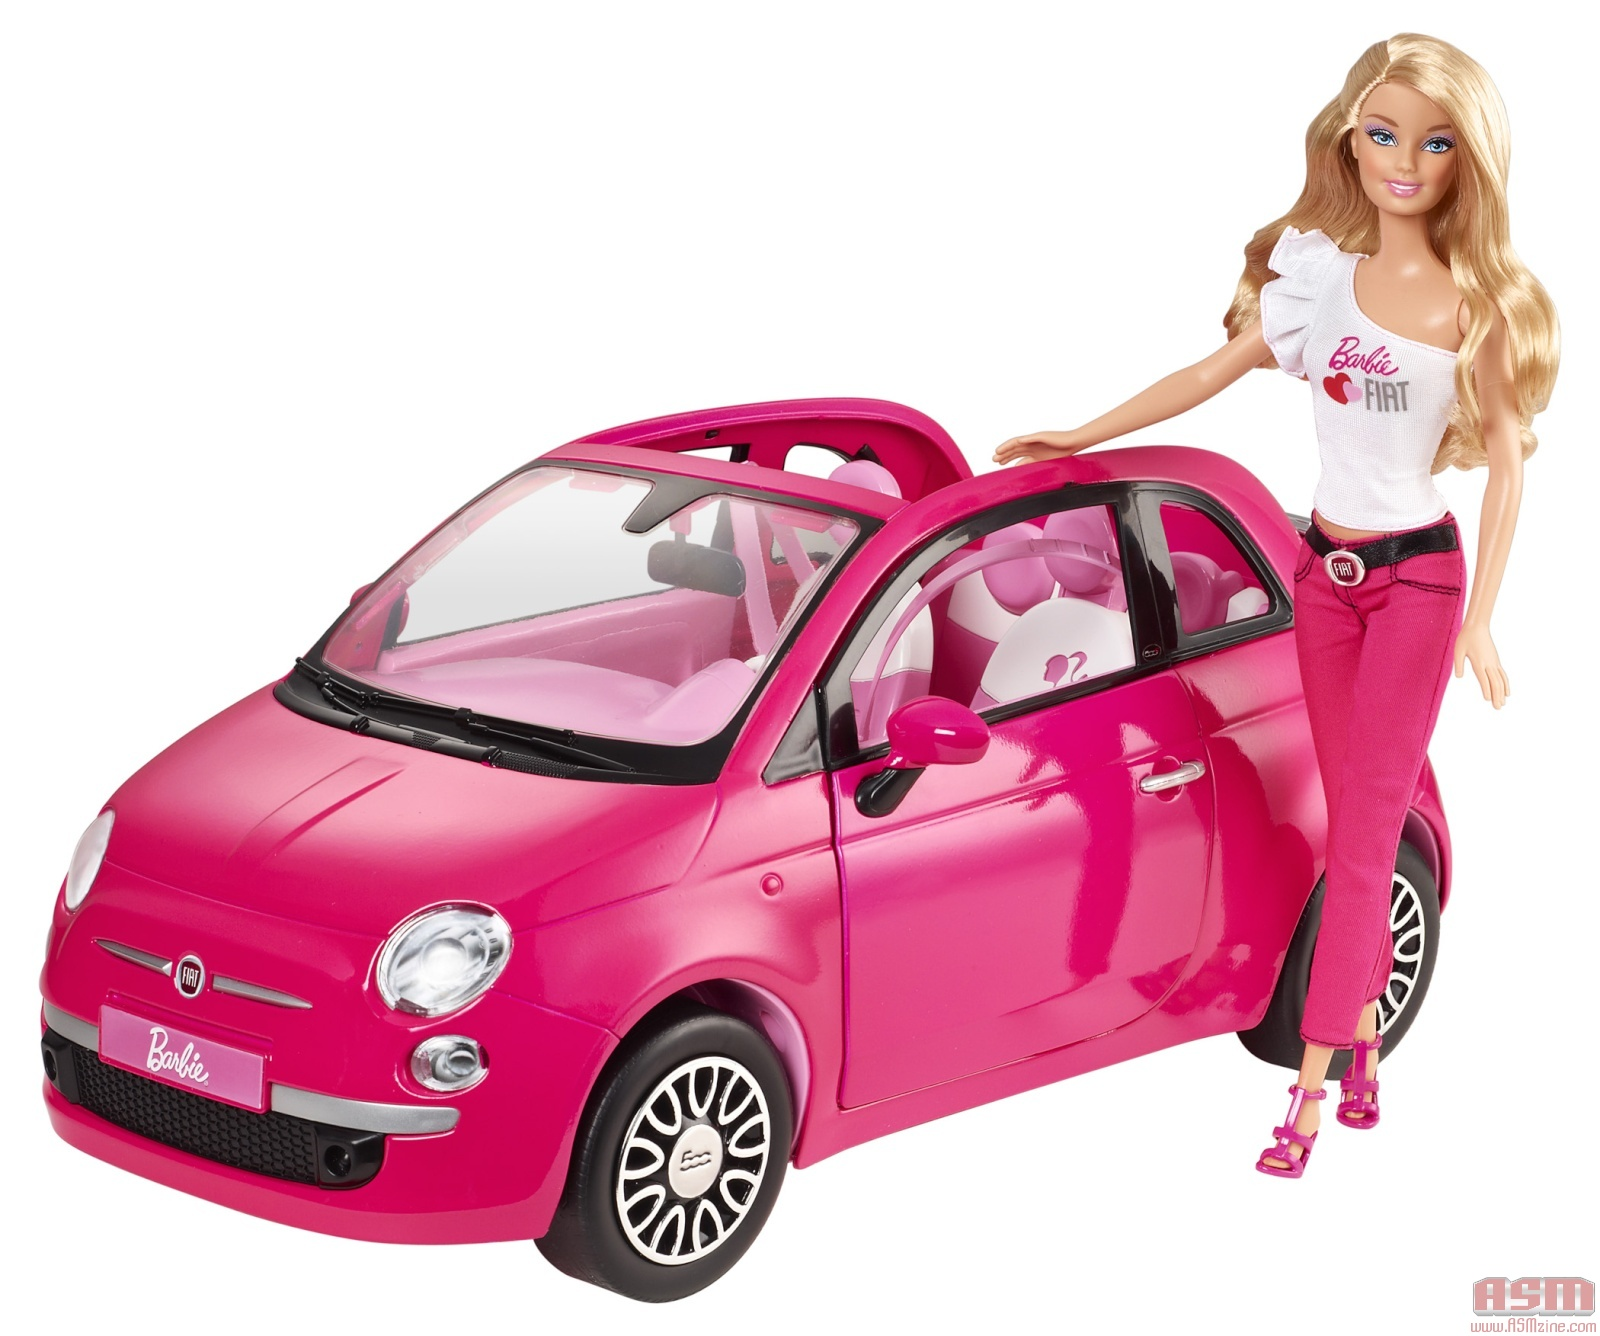 mundo encantado da barbie novidades playlines acampamento de luxo barbie e irm s barbie fiat. Black Bedroom Furniture Sets. Home Design Ideas